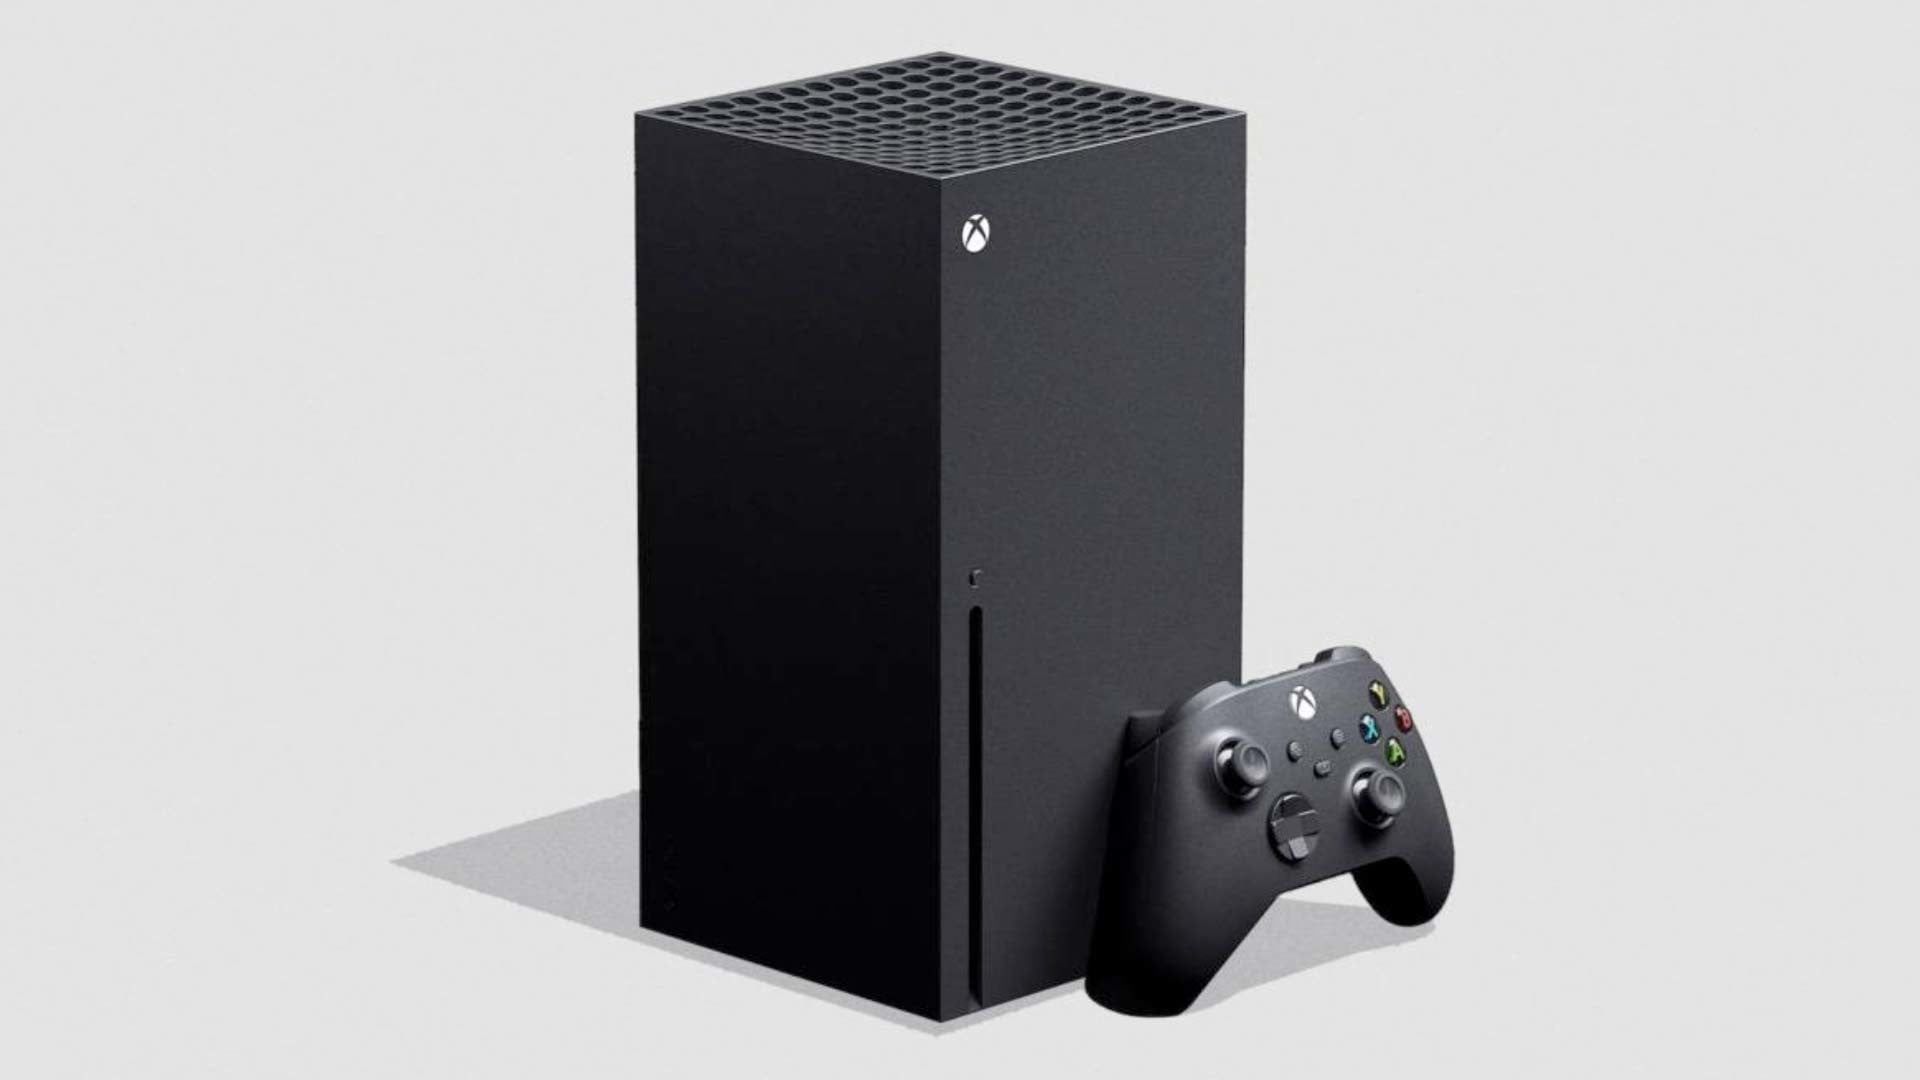 Xbox Series X Vs Ps5 Specs Release Date Price And More Digital Trends